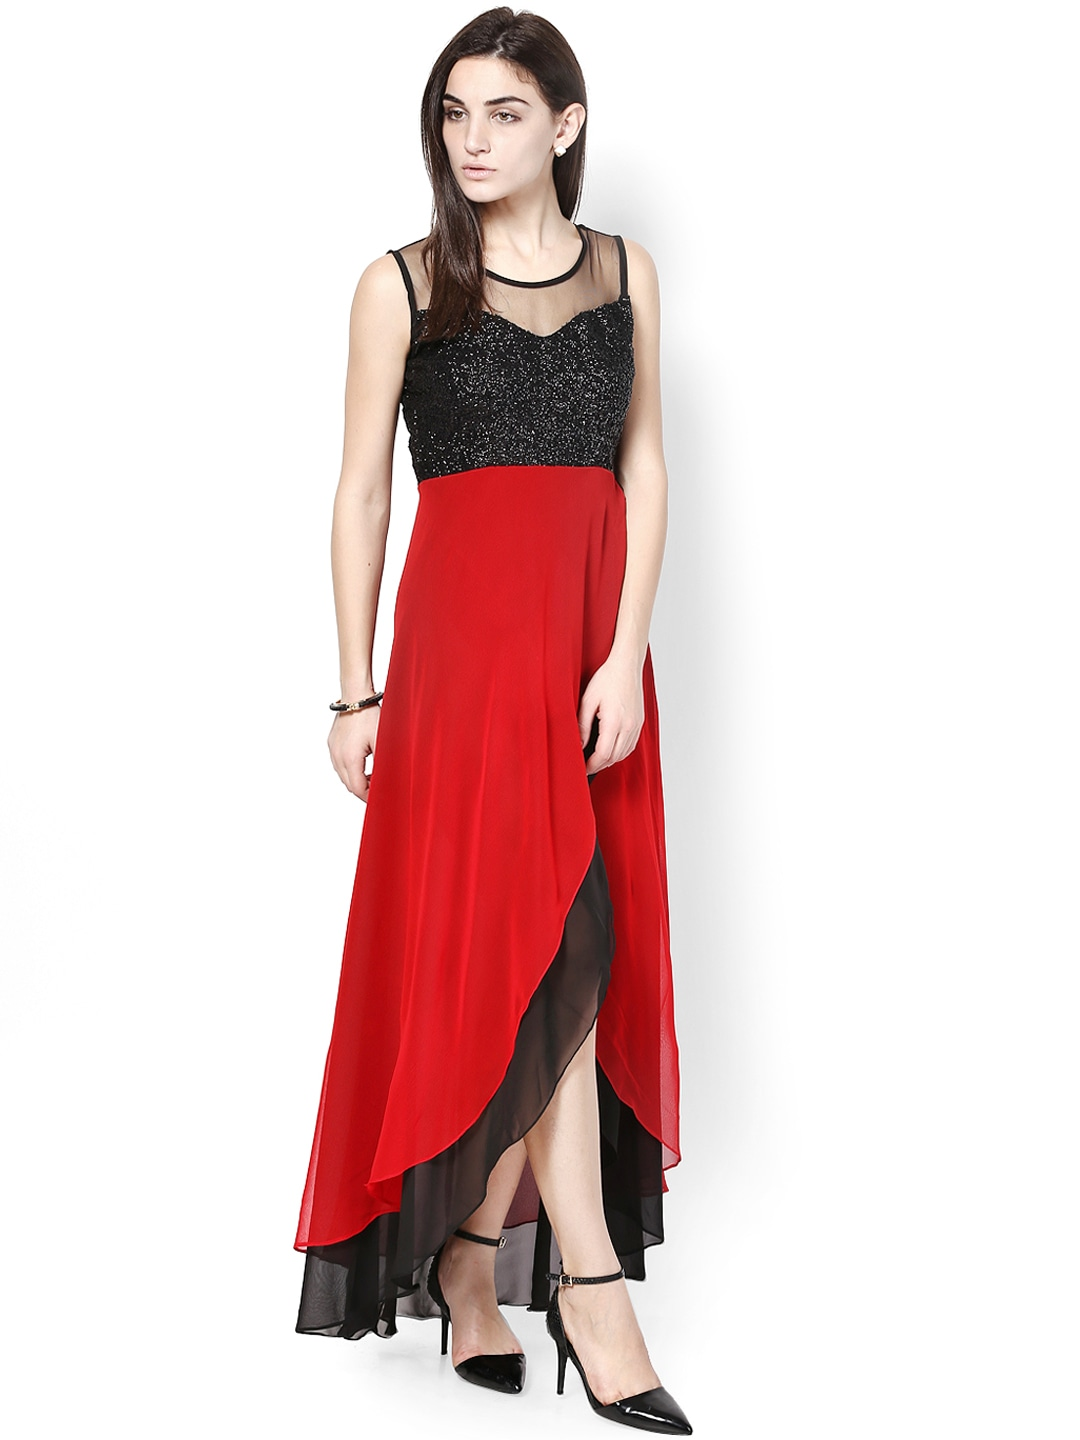 Original  Dress Designs Best Formal Wear Dress Designs For Girls  Best Dress